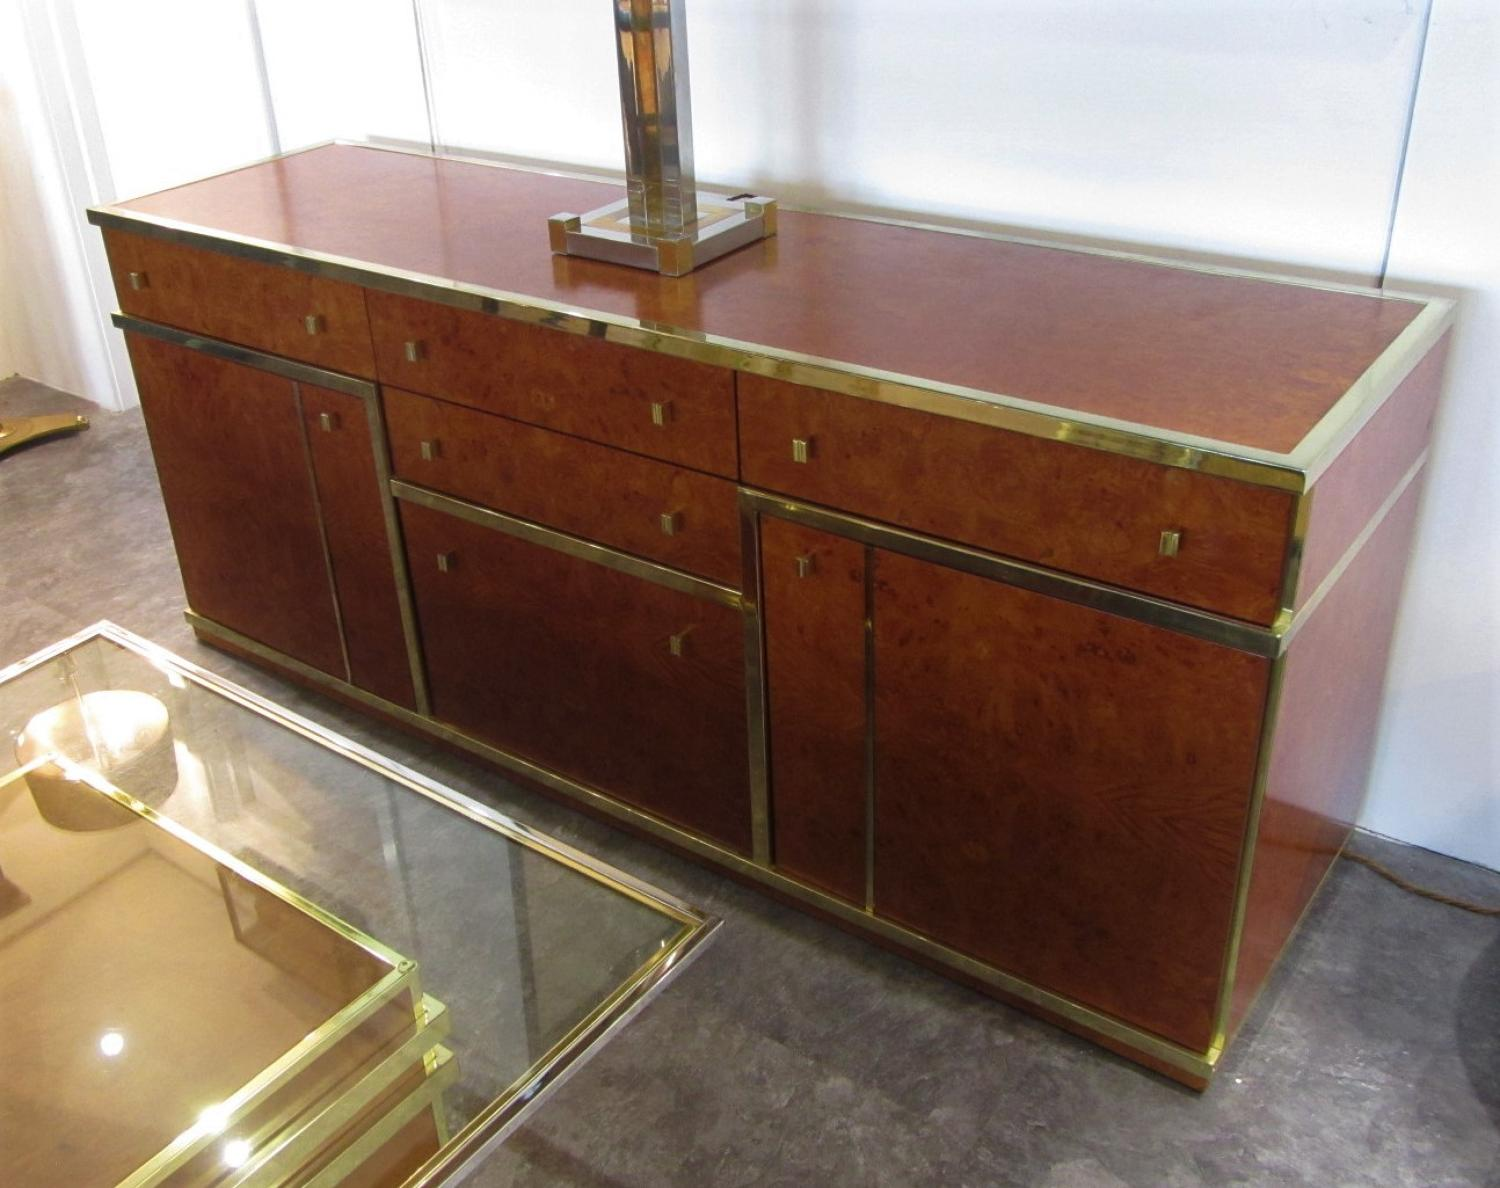 An Italian burr walnut sideboard